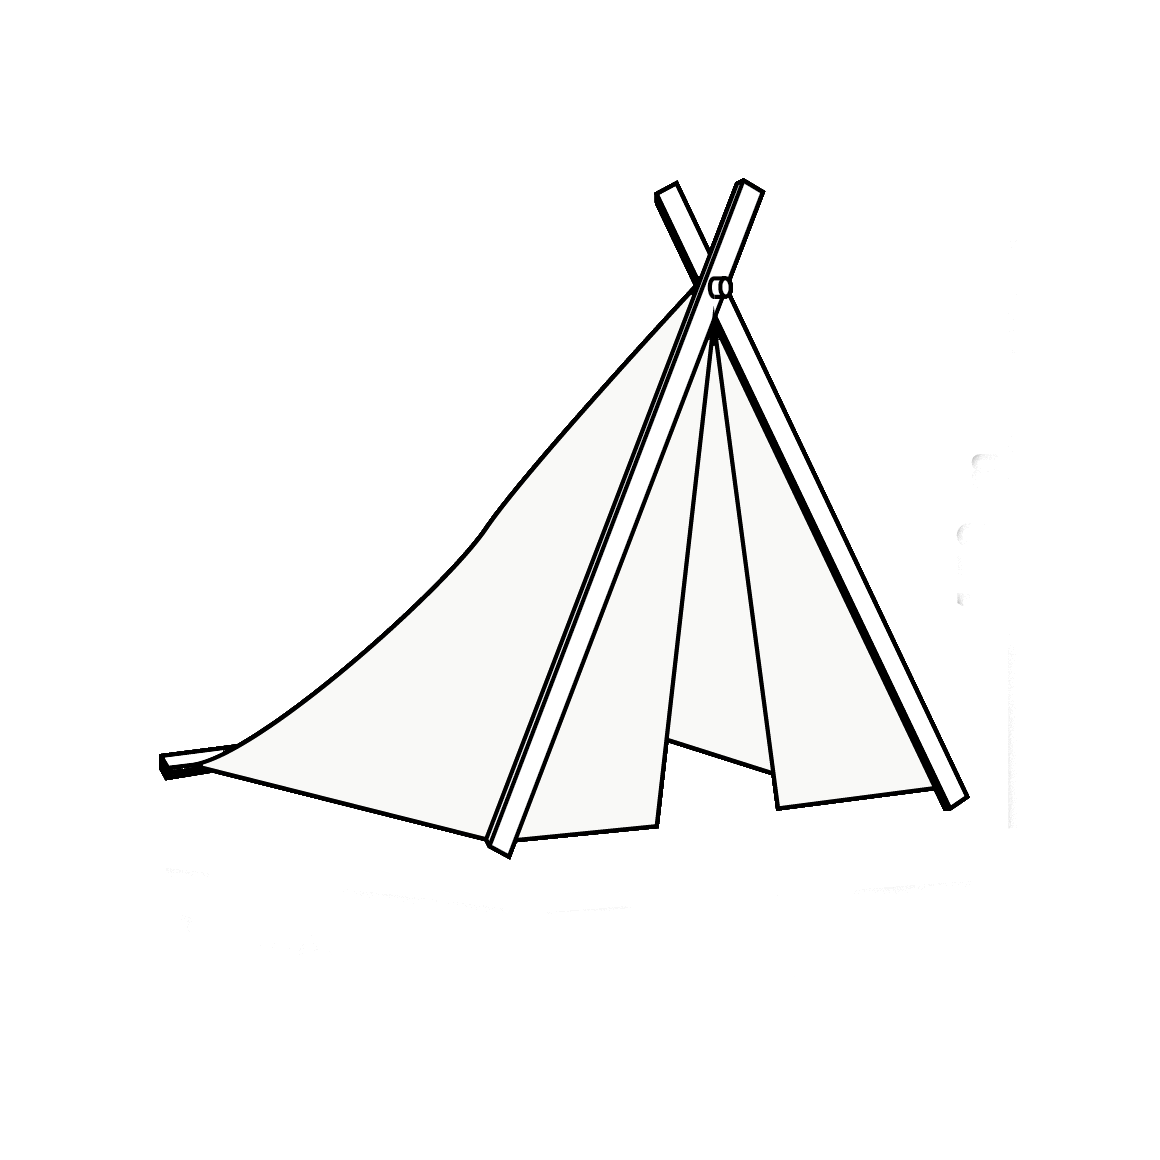 re_pt_ecru_naturel